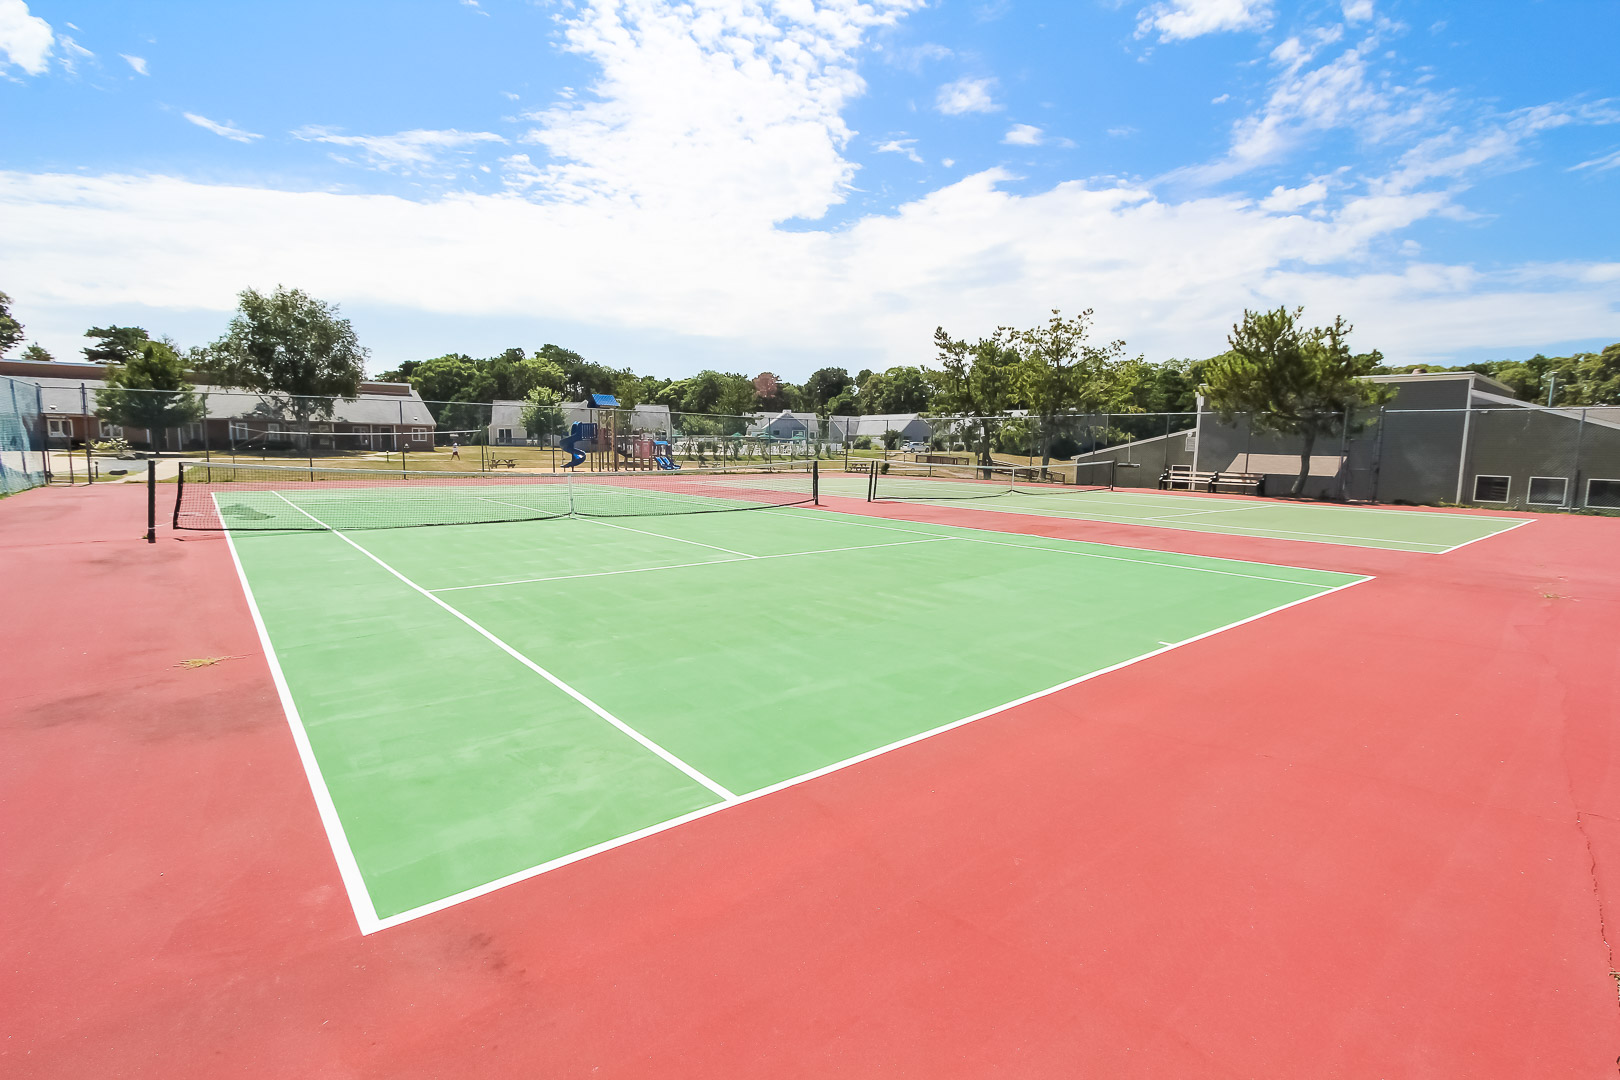 Full size tennis courts available for the family to enjoy at VRI's Brewster Green Resort in Massachusetts.